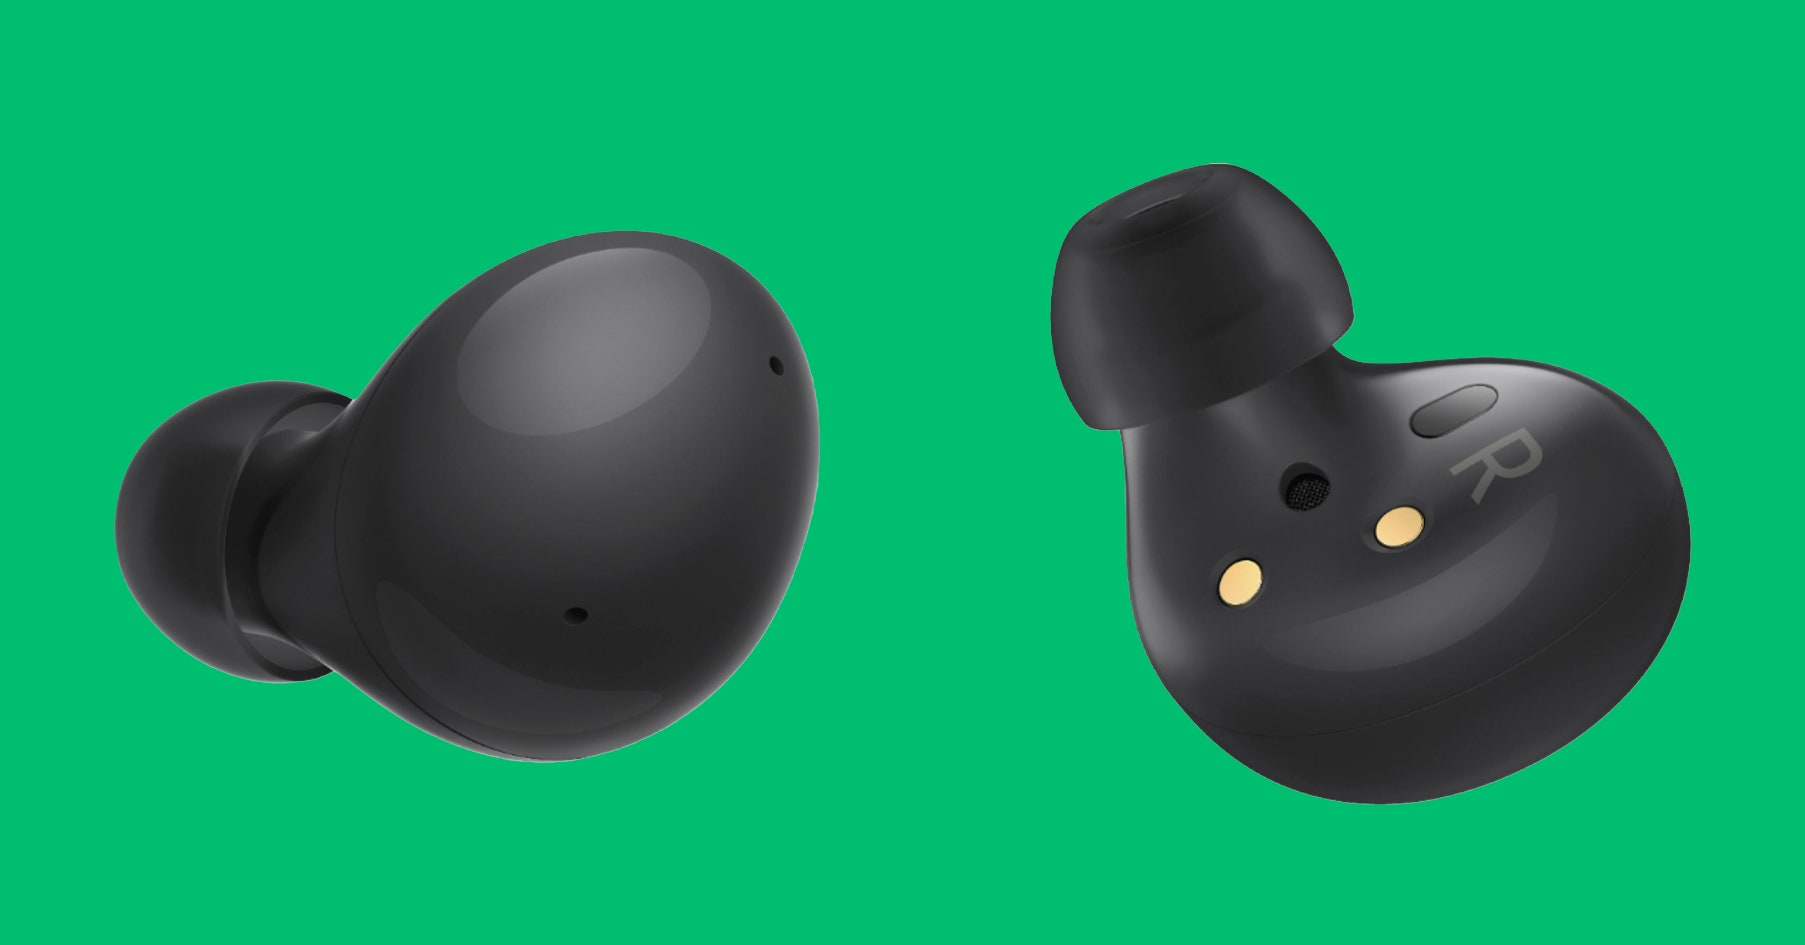 11 Best Wireless Earbuds for Working Out (2021)